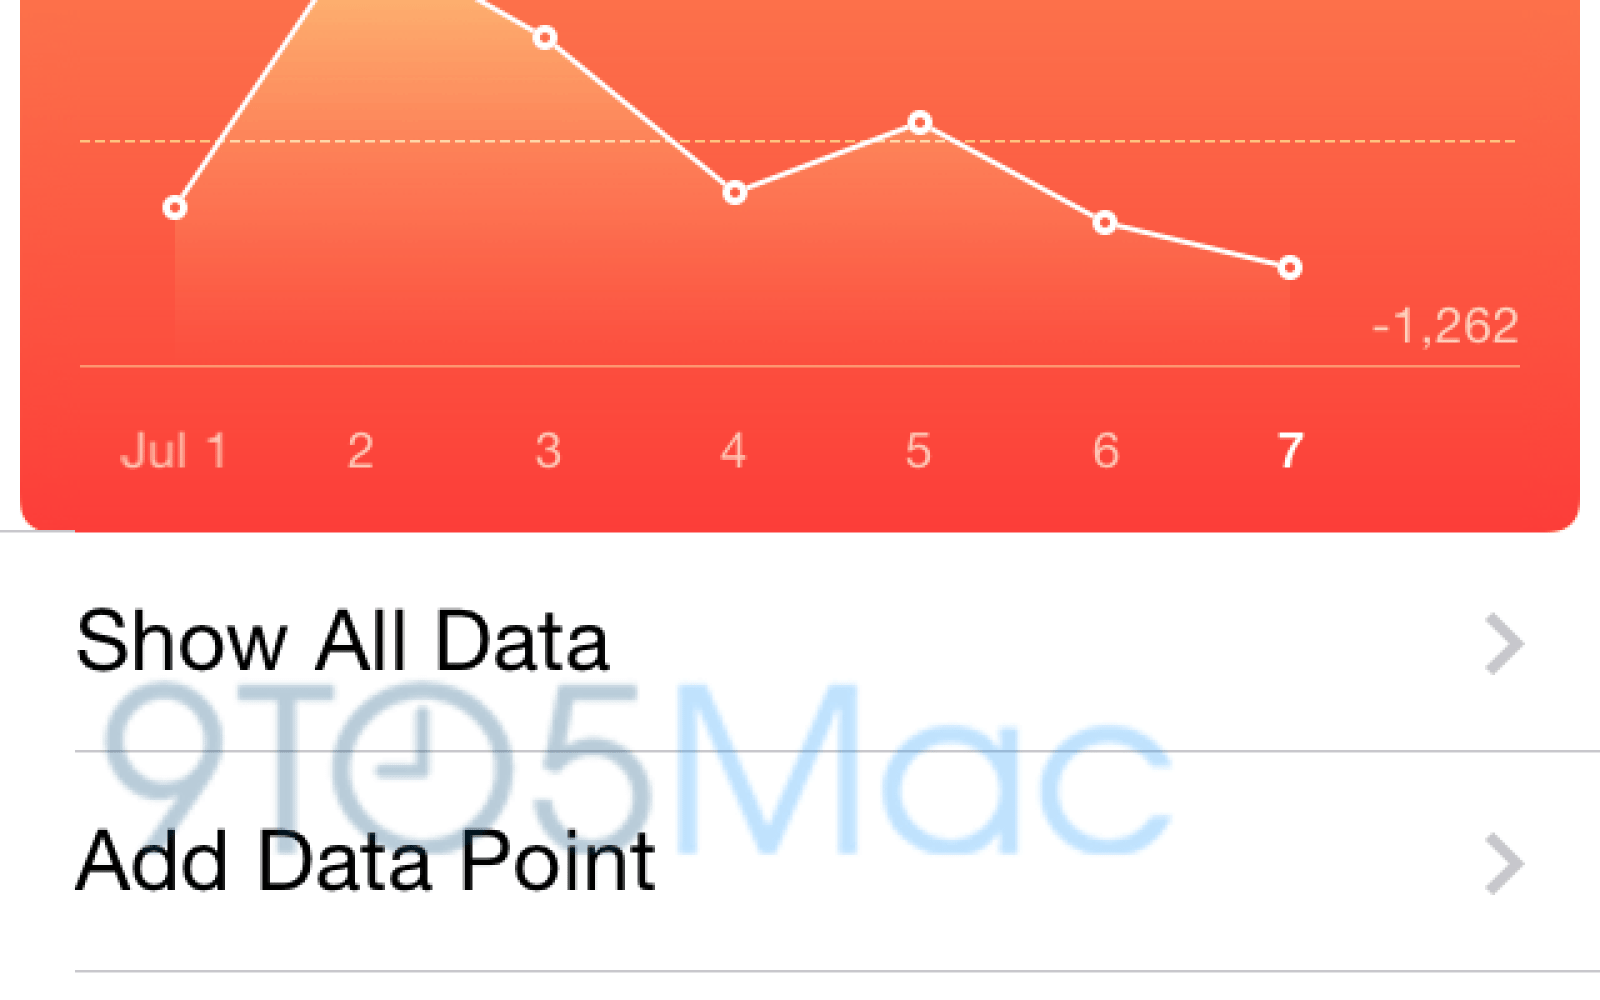 Apple bolsters iOS 8 Health app with on-device steps counting & caffeine tracking